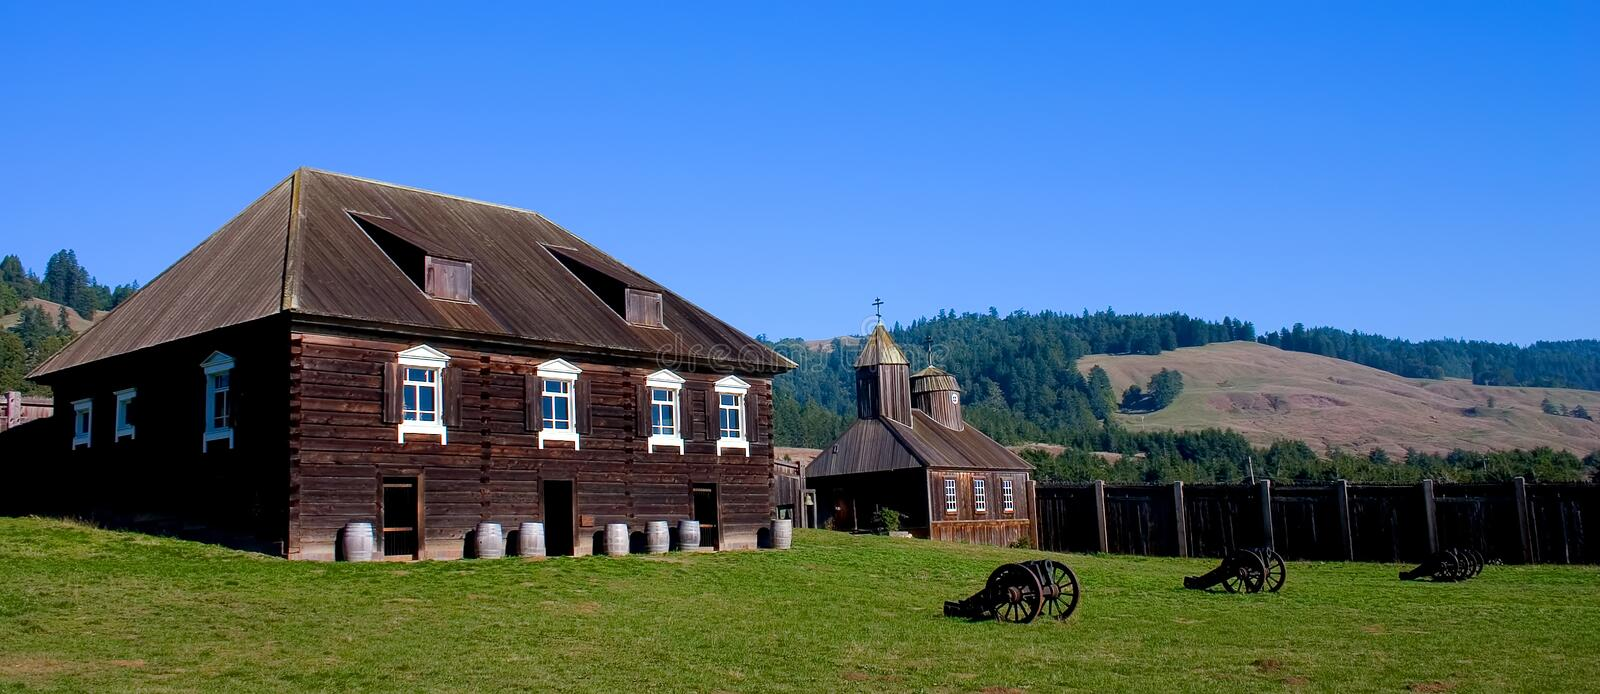 Cannon in Fort Ross inner square, California royalty free stock photos